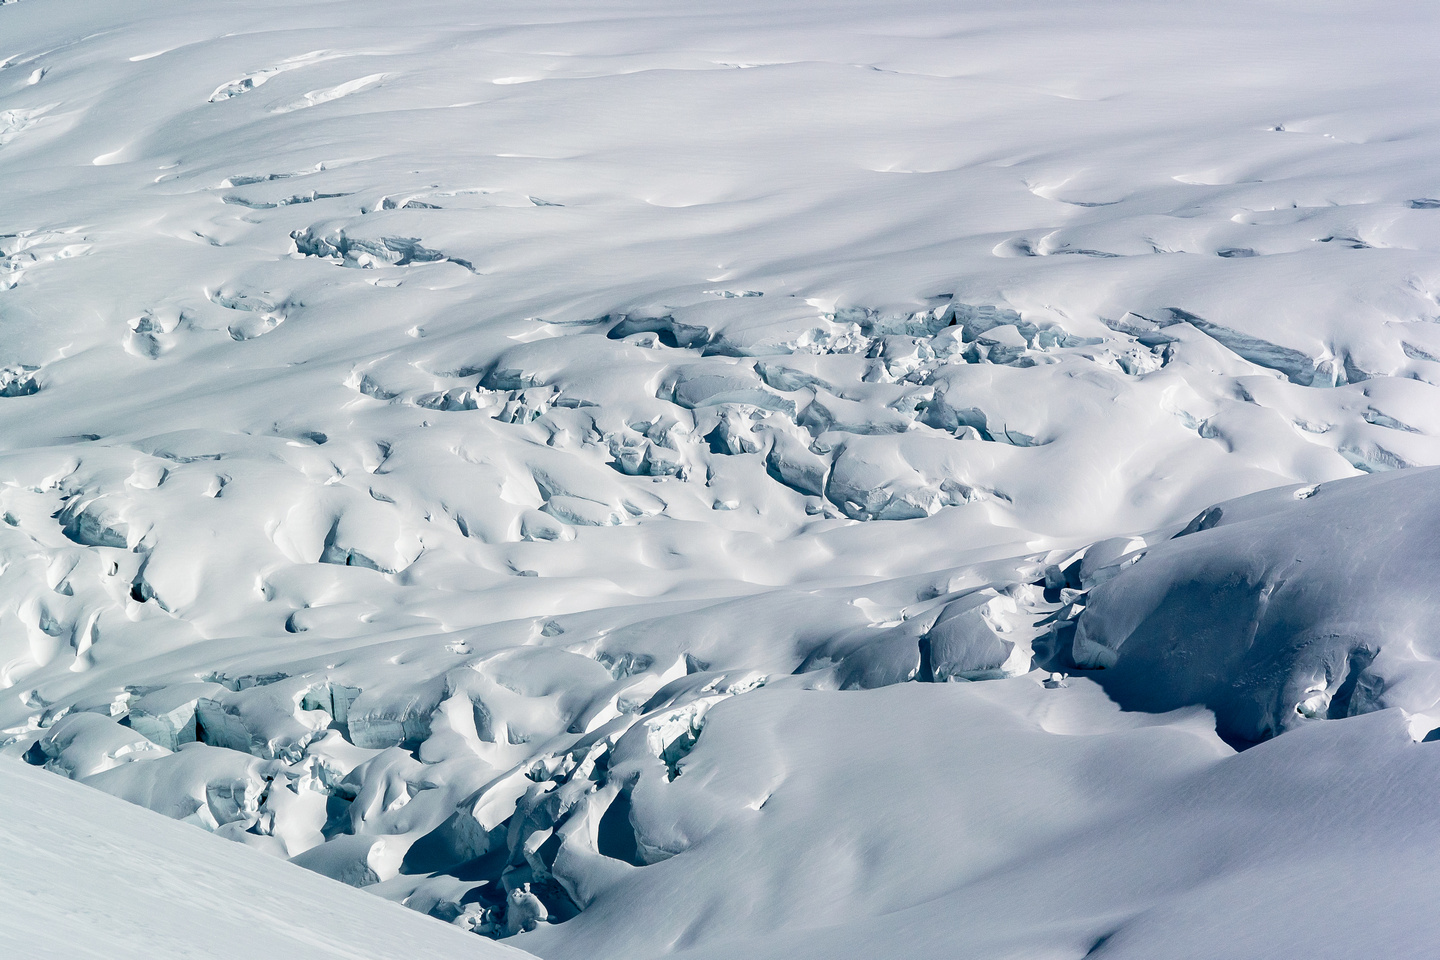 Looking back down the trench - this is the icefall we avoided by going further south before descending the trench.